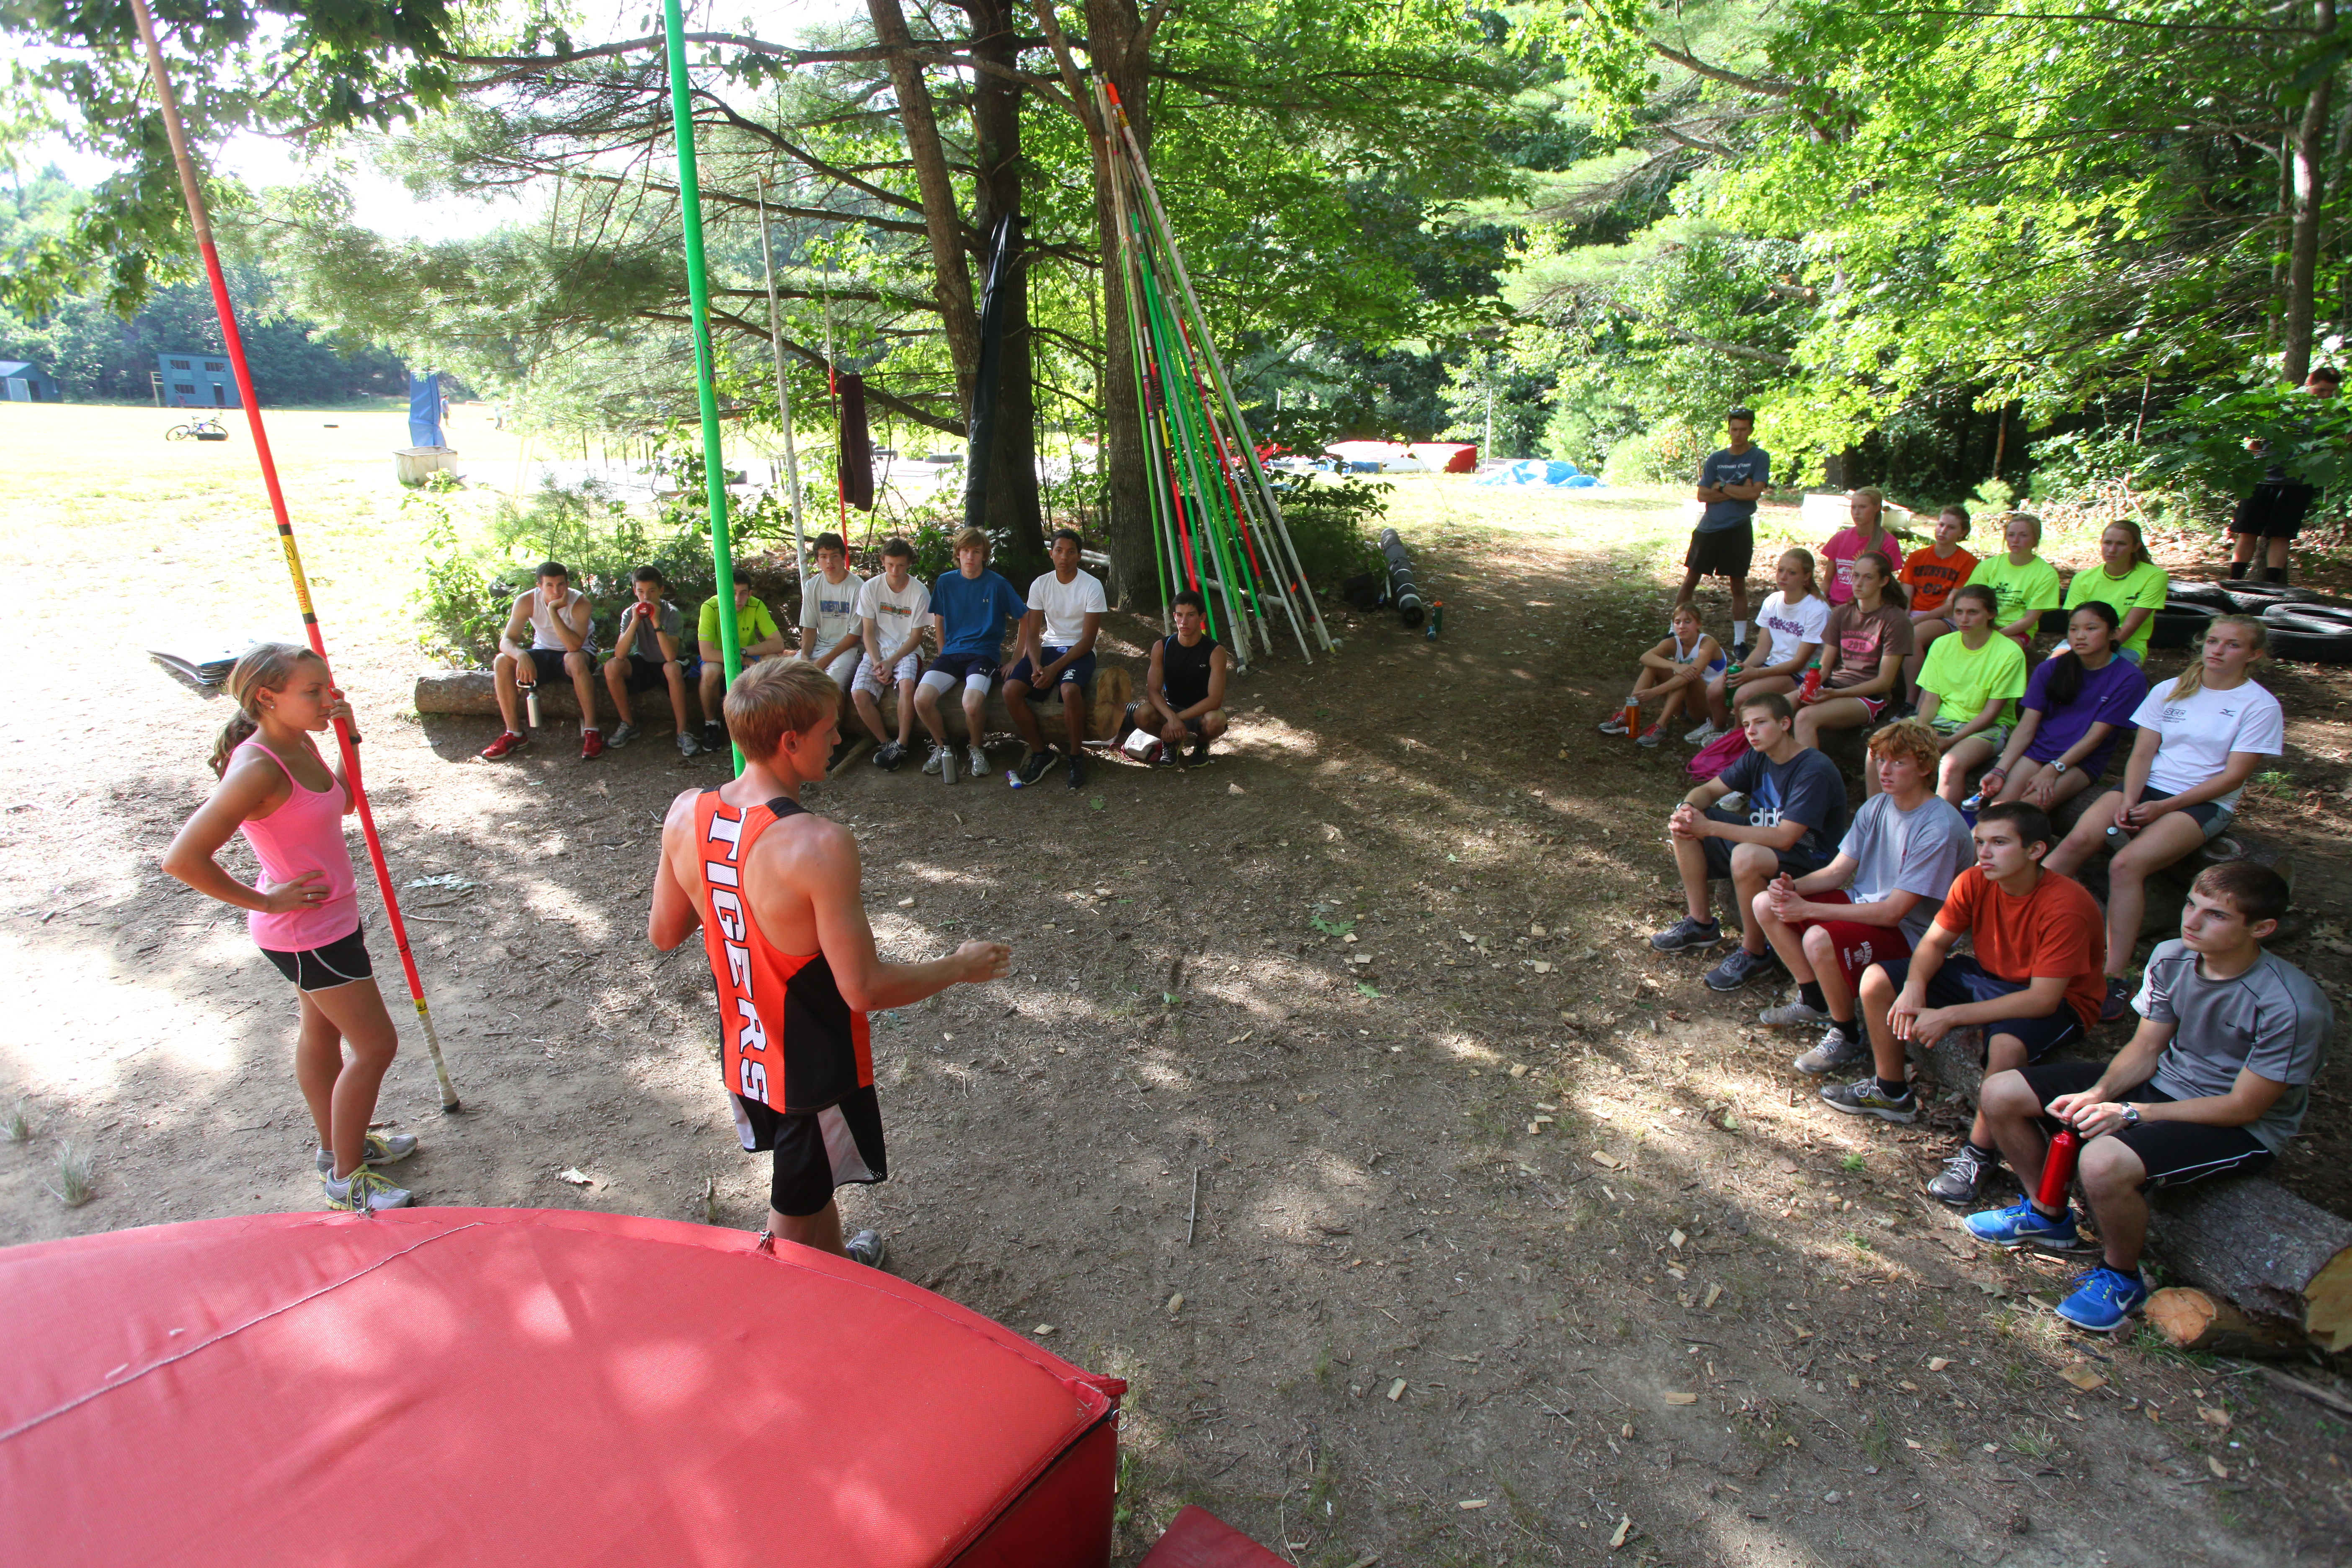 Campers receiving instruction at the field pit from Tarzan